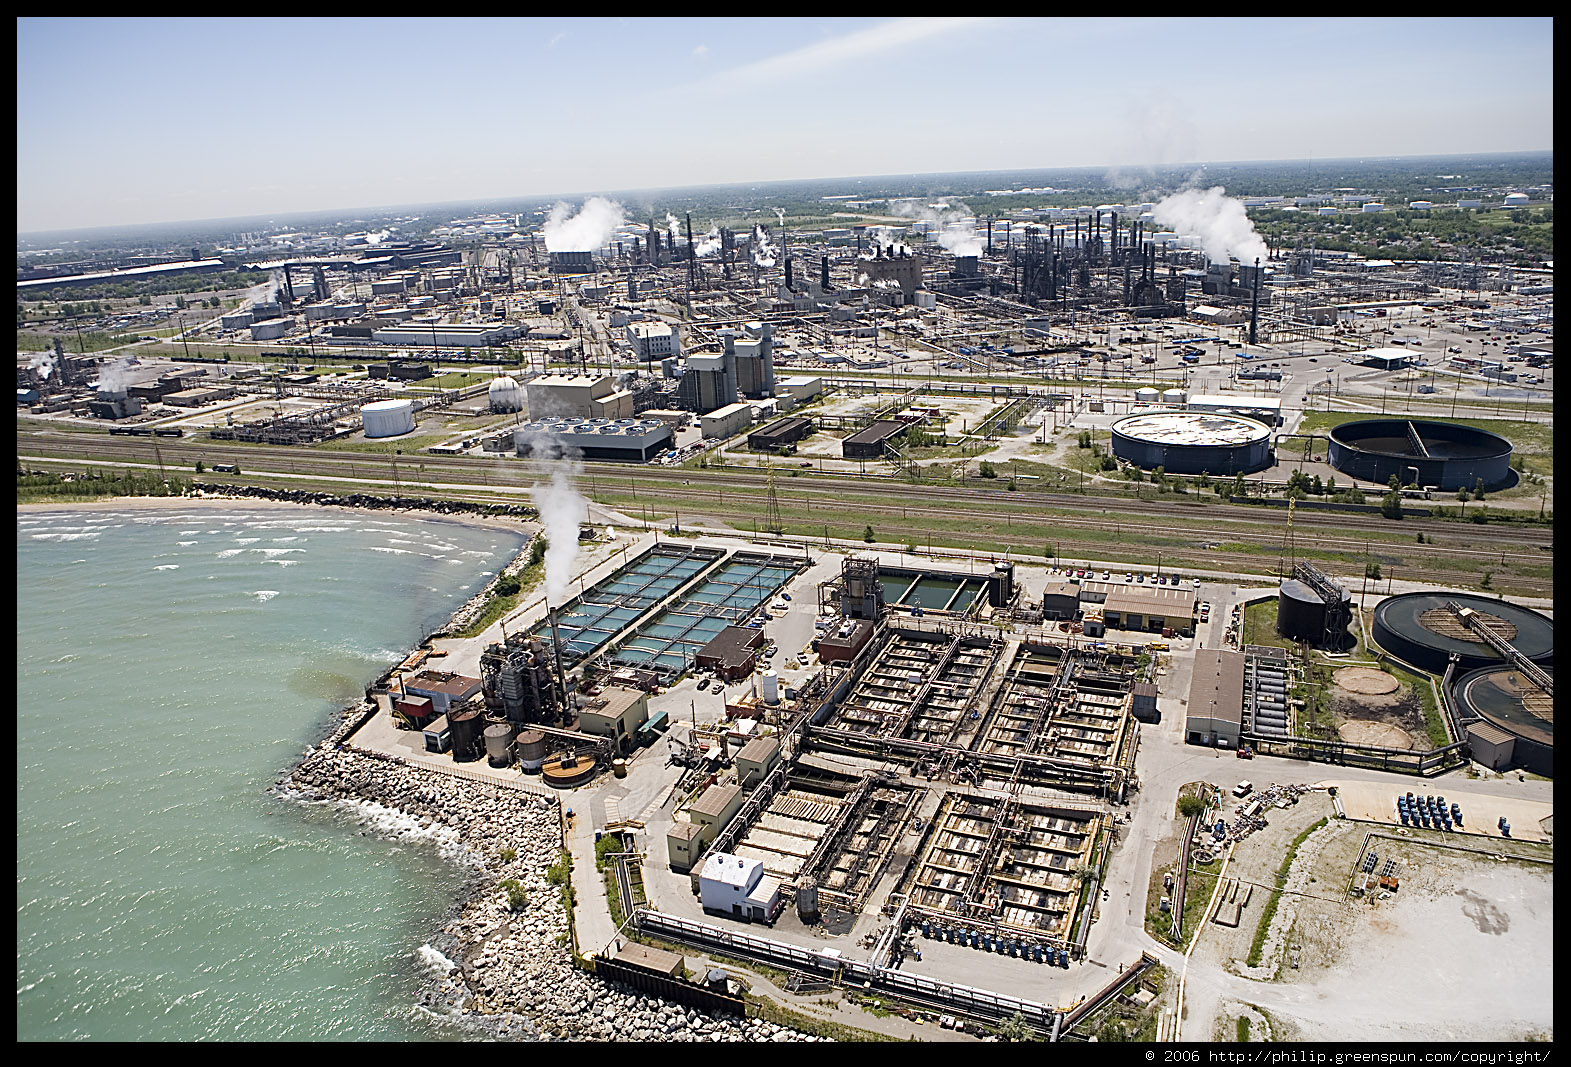 Photograph by Philip Greenspun: gary-indiana-lakefront-aerial-02